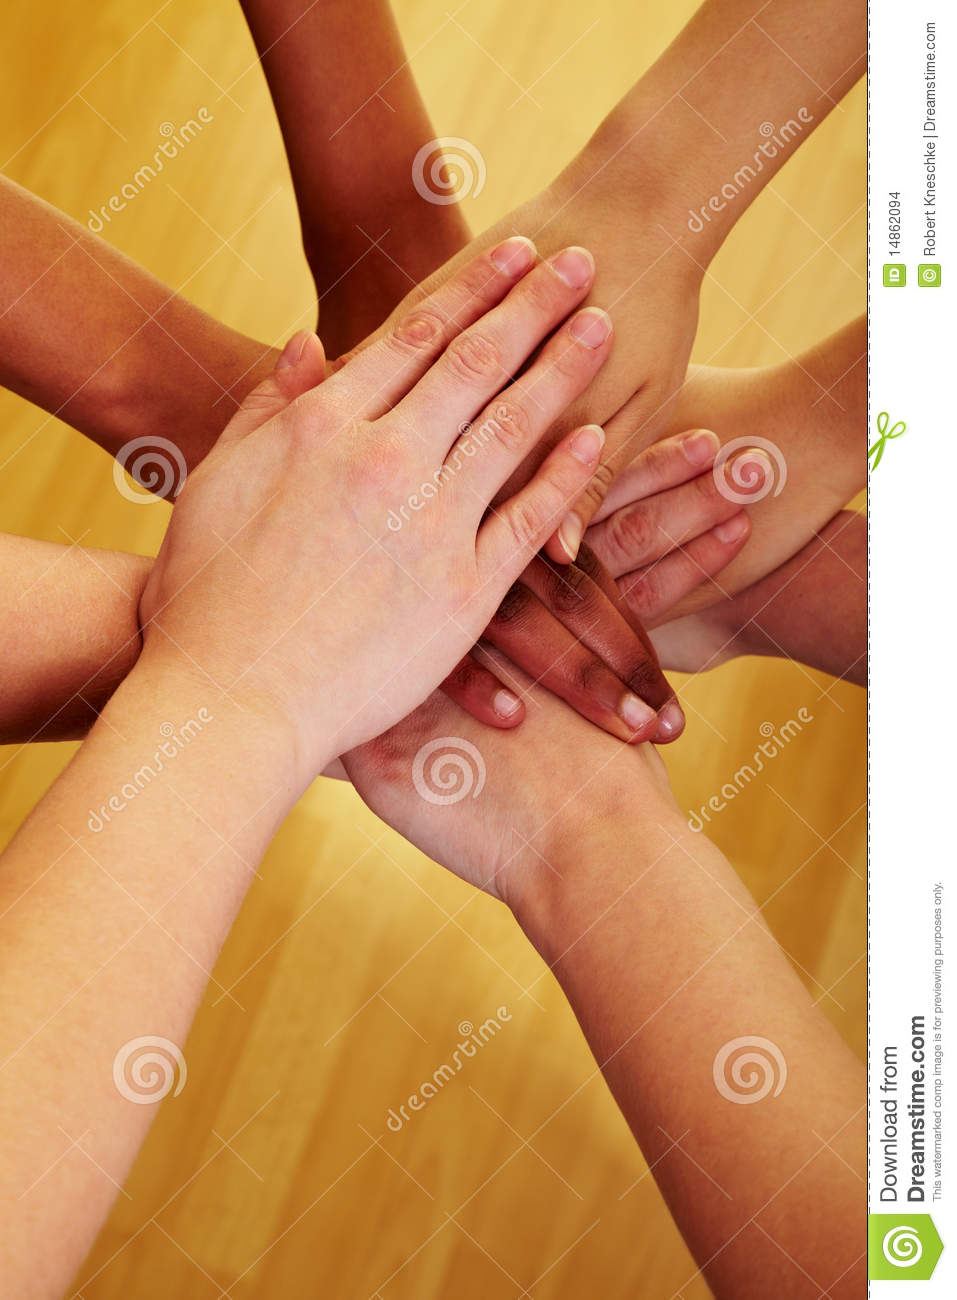 Stacking hands together